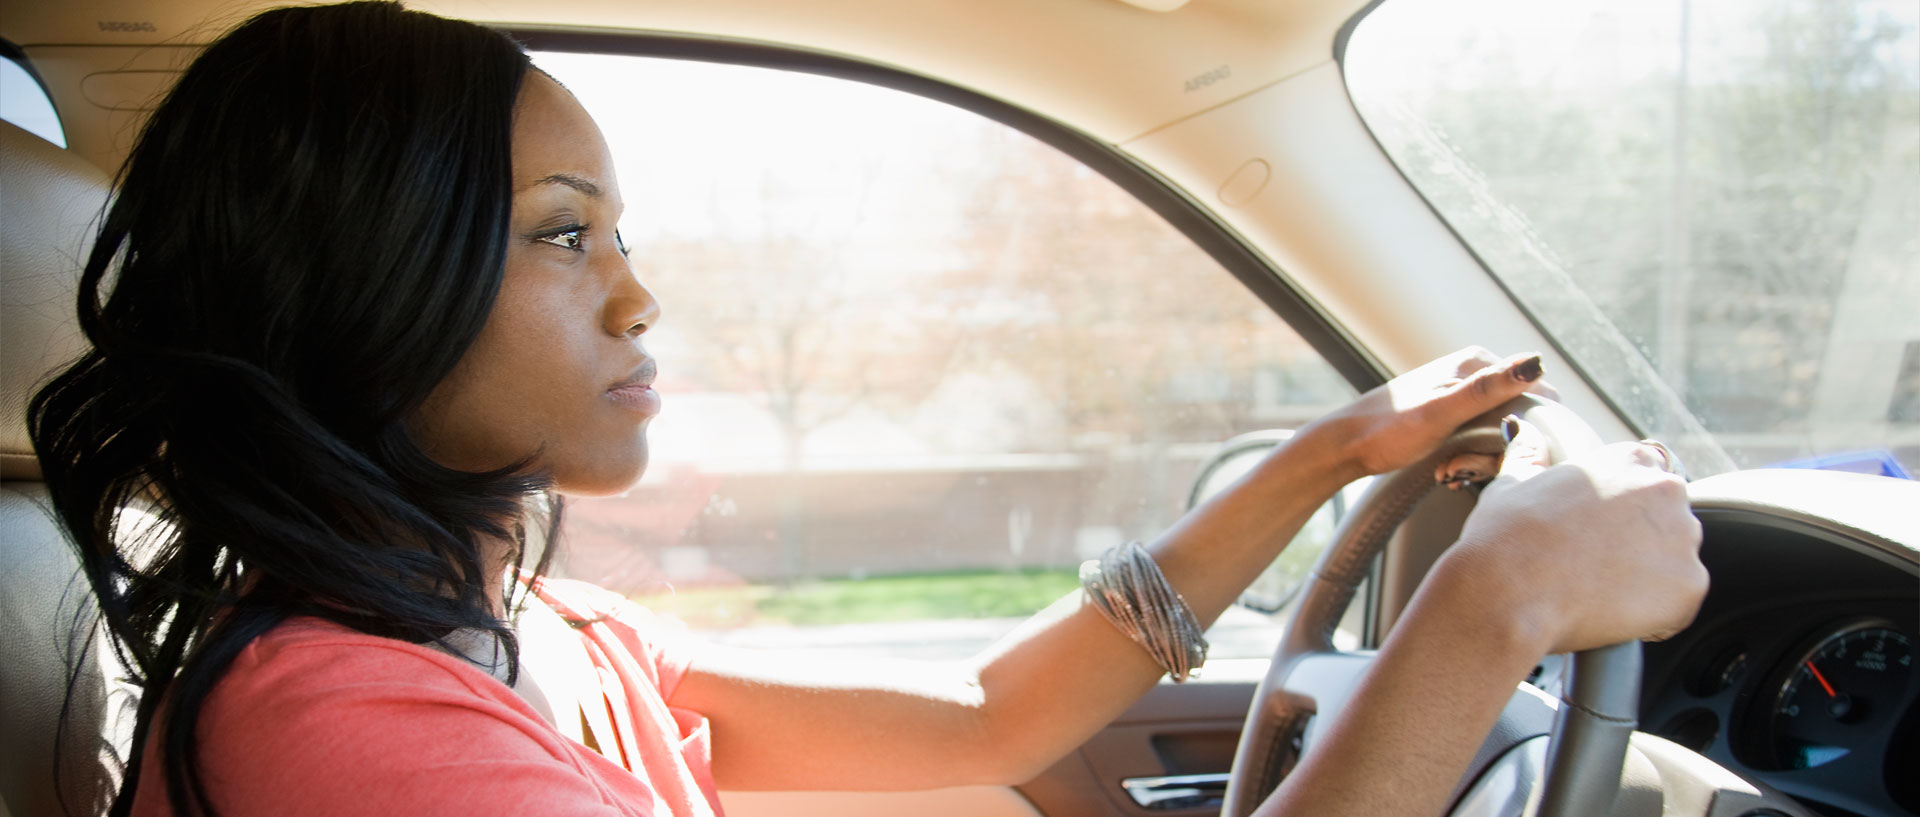 Car Insurance Can Cost More In African American